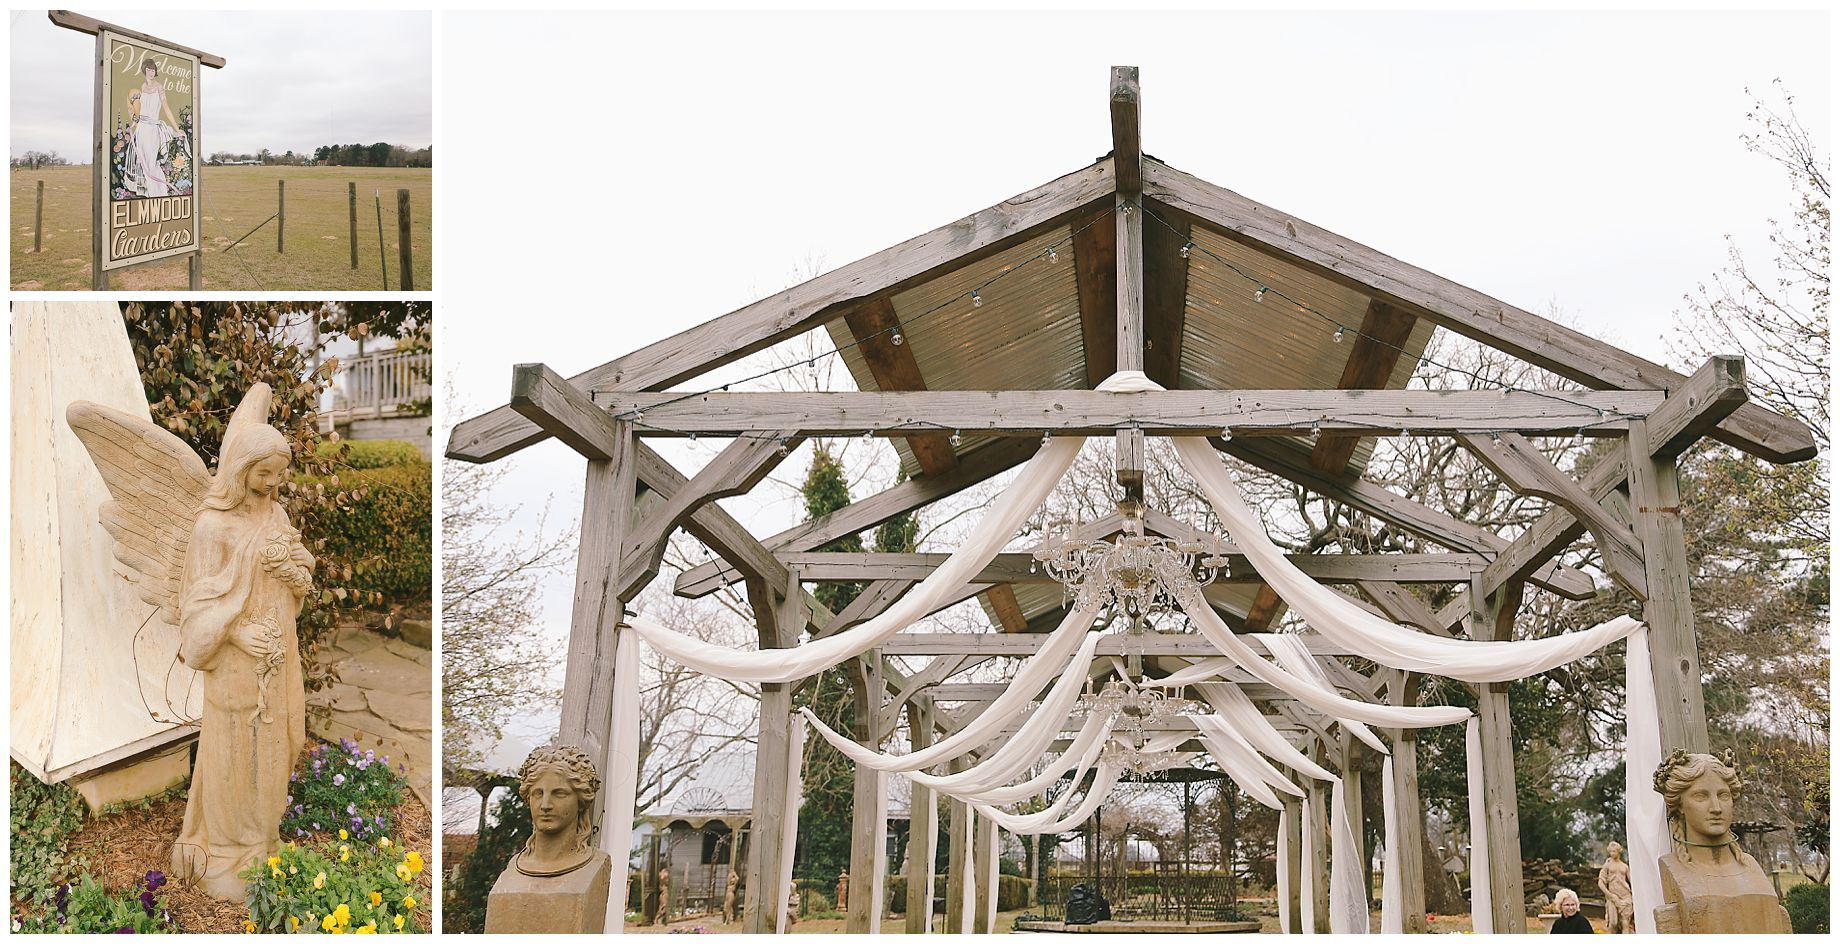 elmwood-gardens-wedding-photos-01